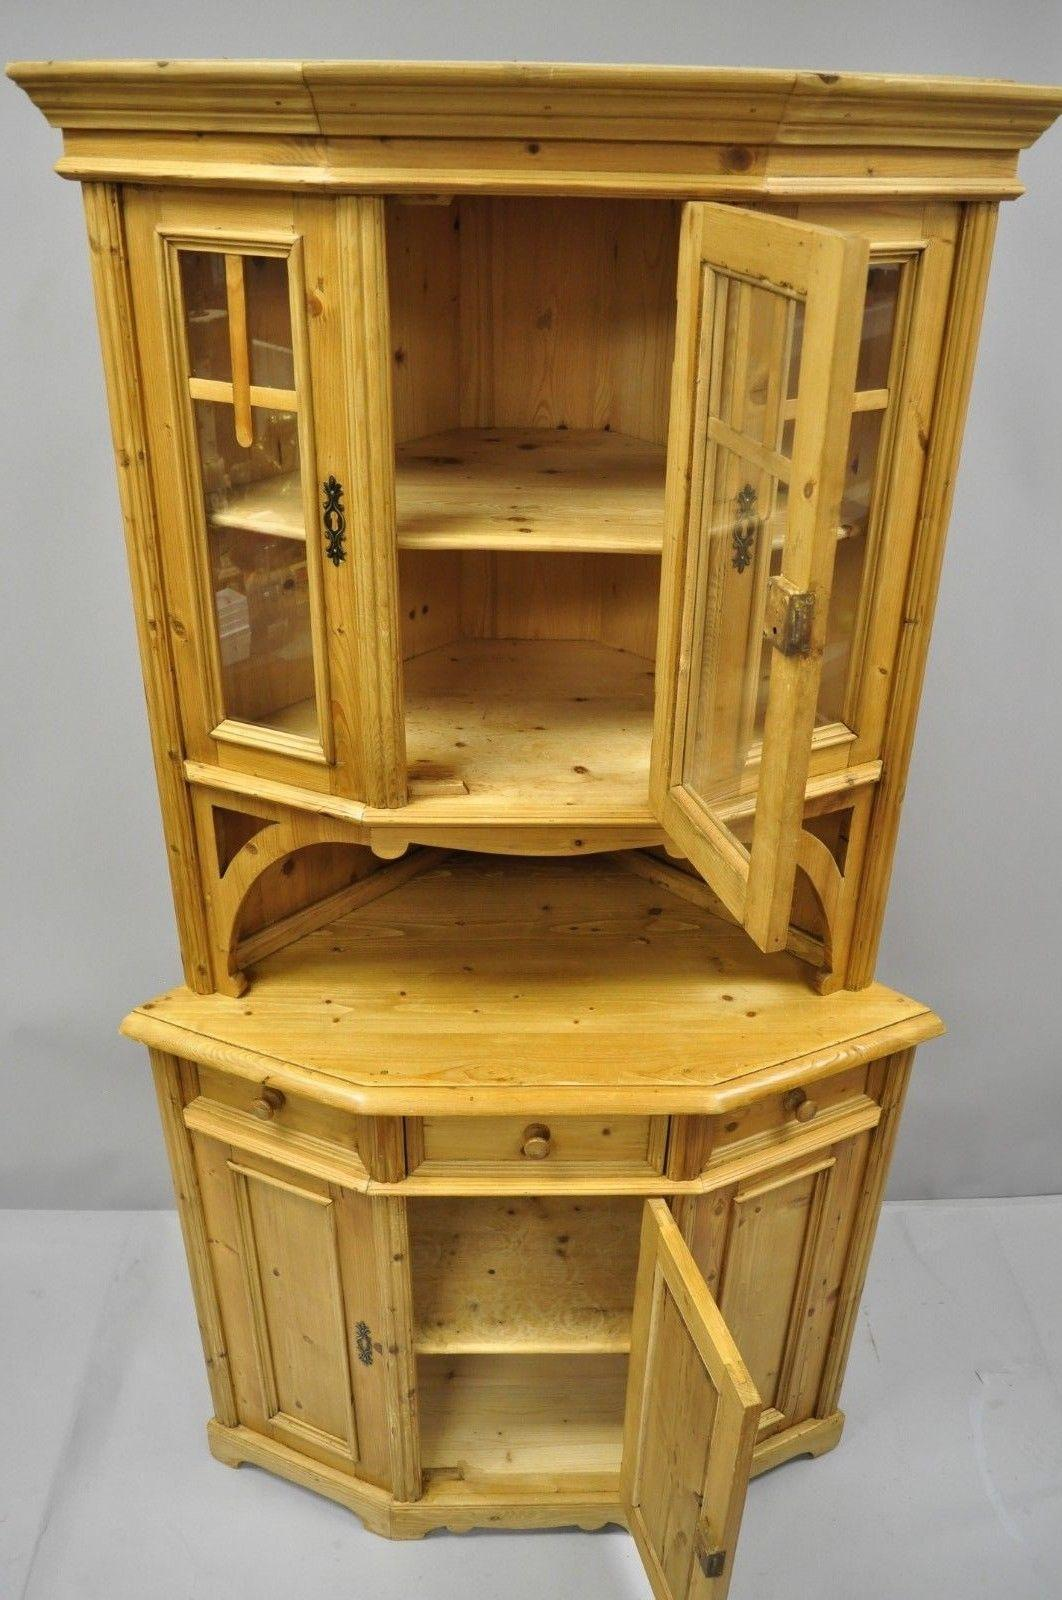 20th Century Country French Gothic Primitive Corner China Cabinet Hutch  Pine Wood Cupboard For Sale